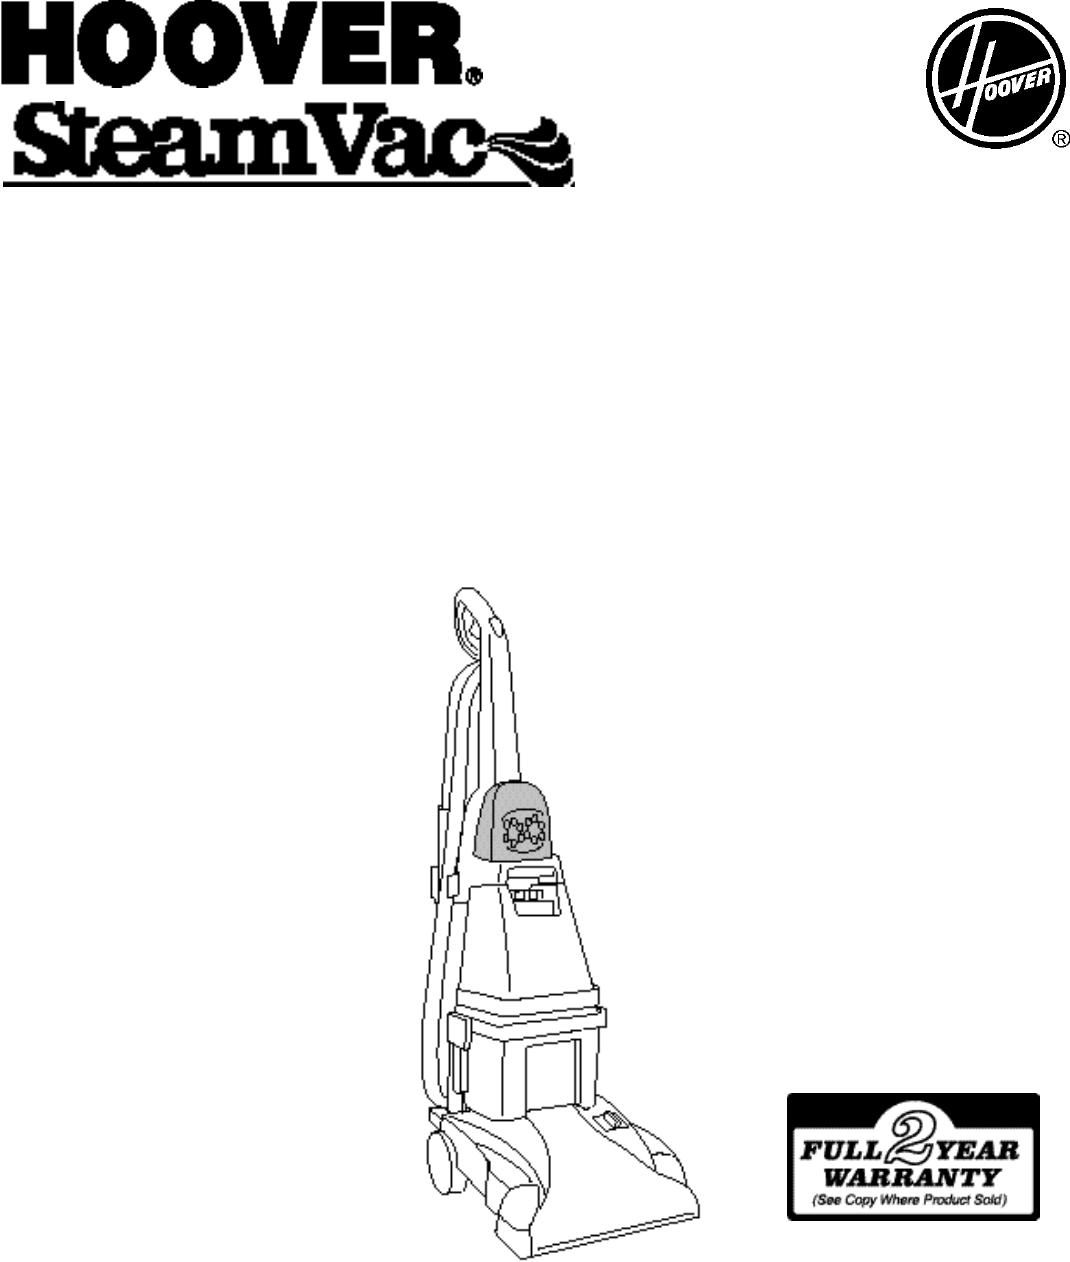 hoover steamvac supreme instructions